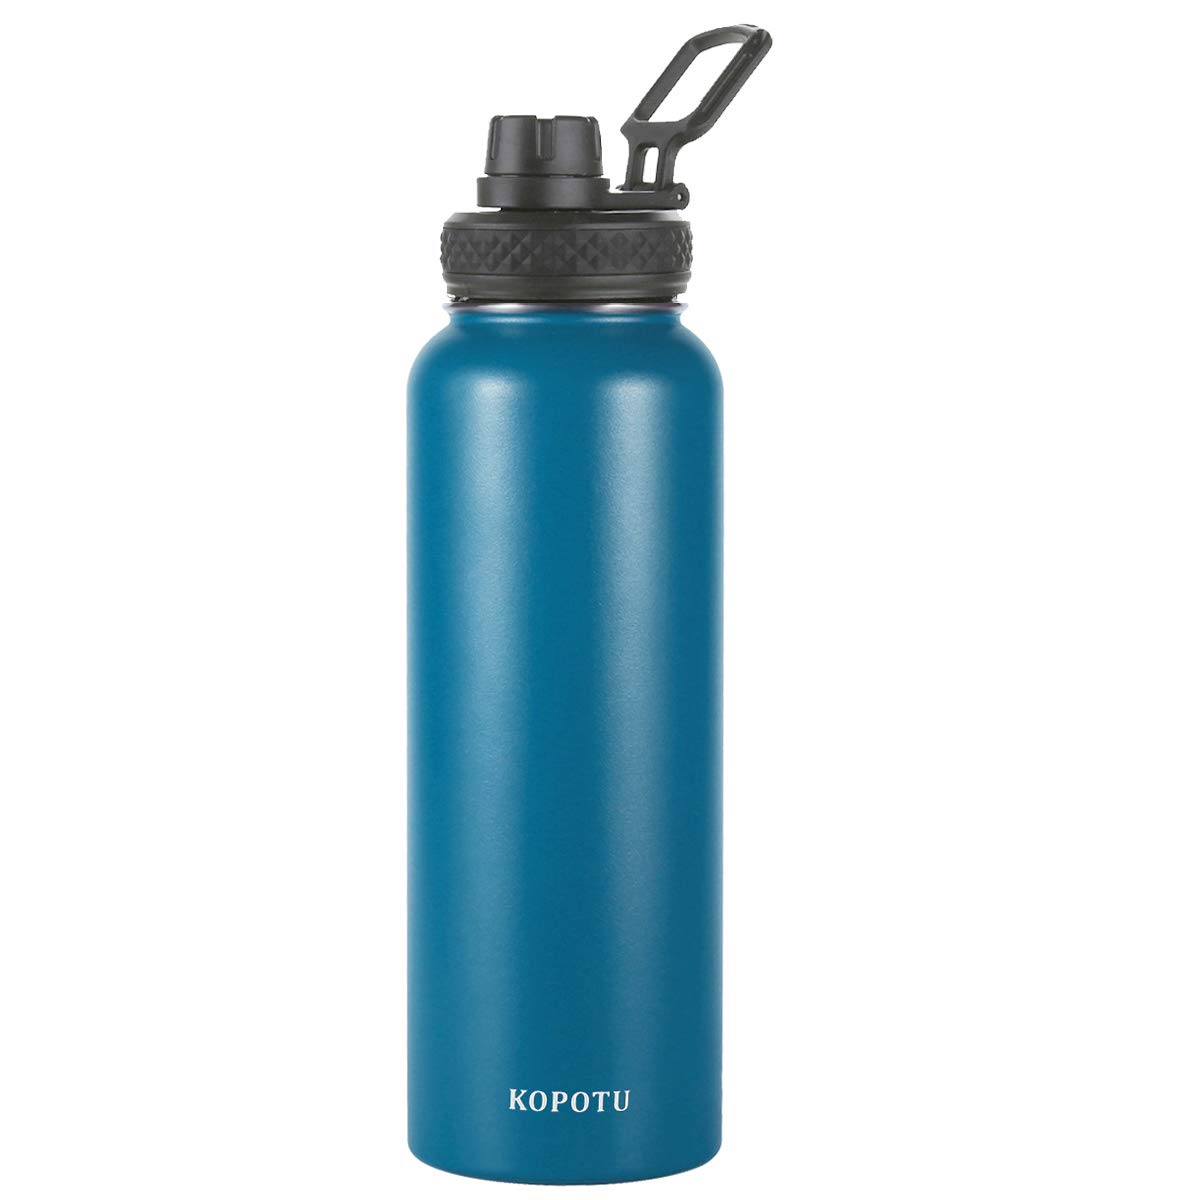 Double Wall, BPA Free, Leak Proof, Sweat Free Wide Mouth Water Bottle with Straw Lid and Spout Lid KOPOTU Stainless Steel Vacuum Flask